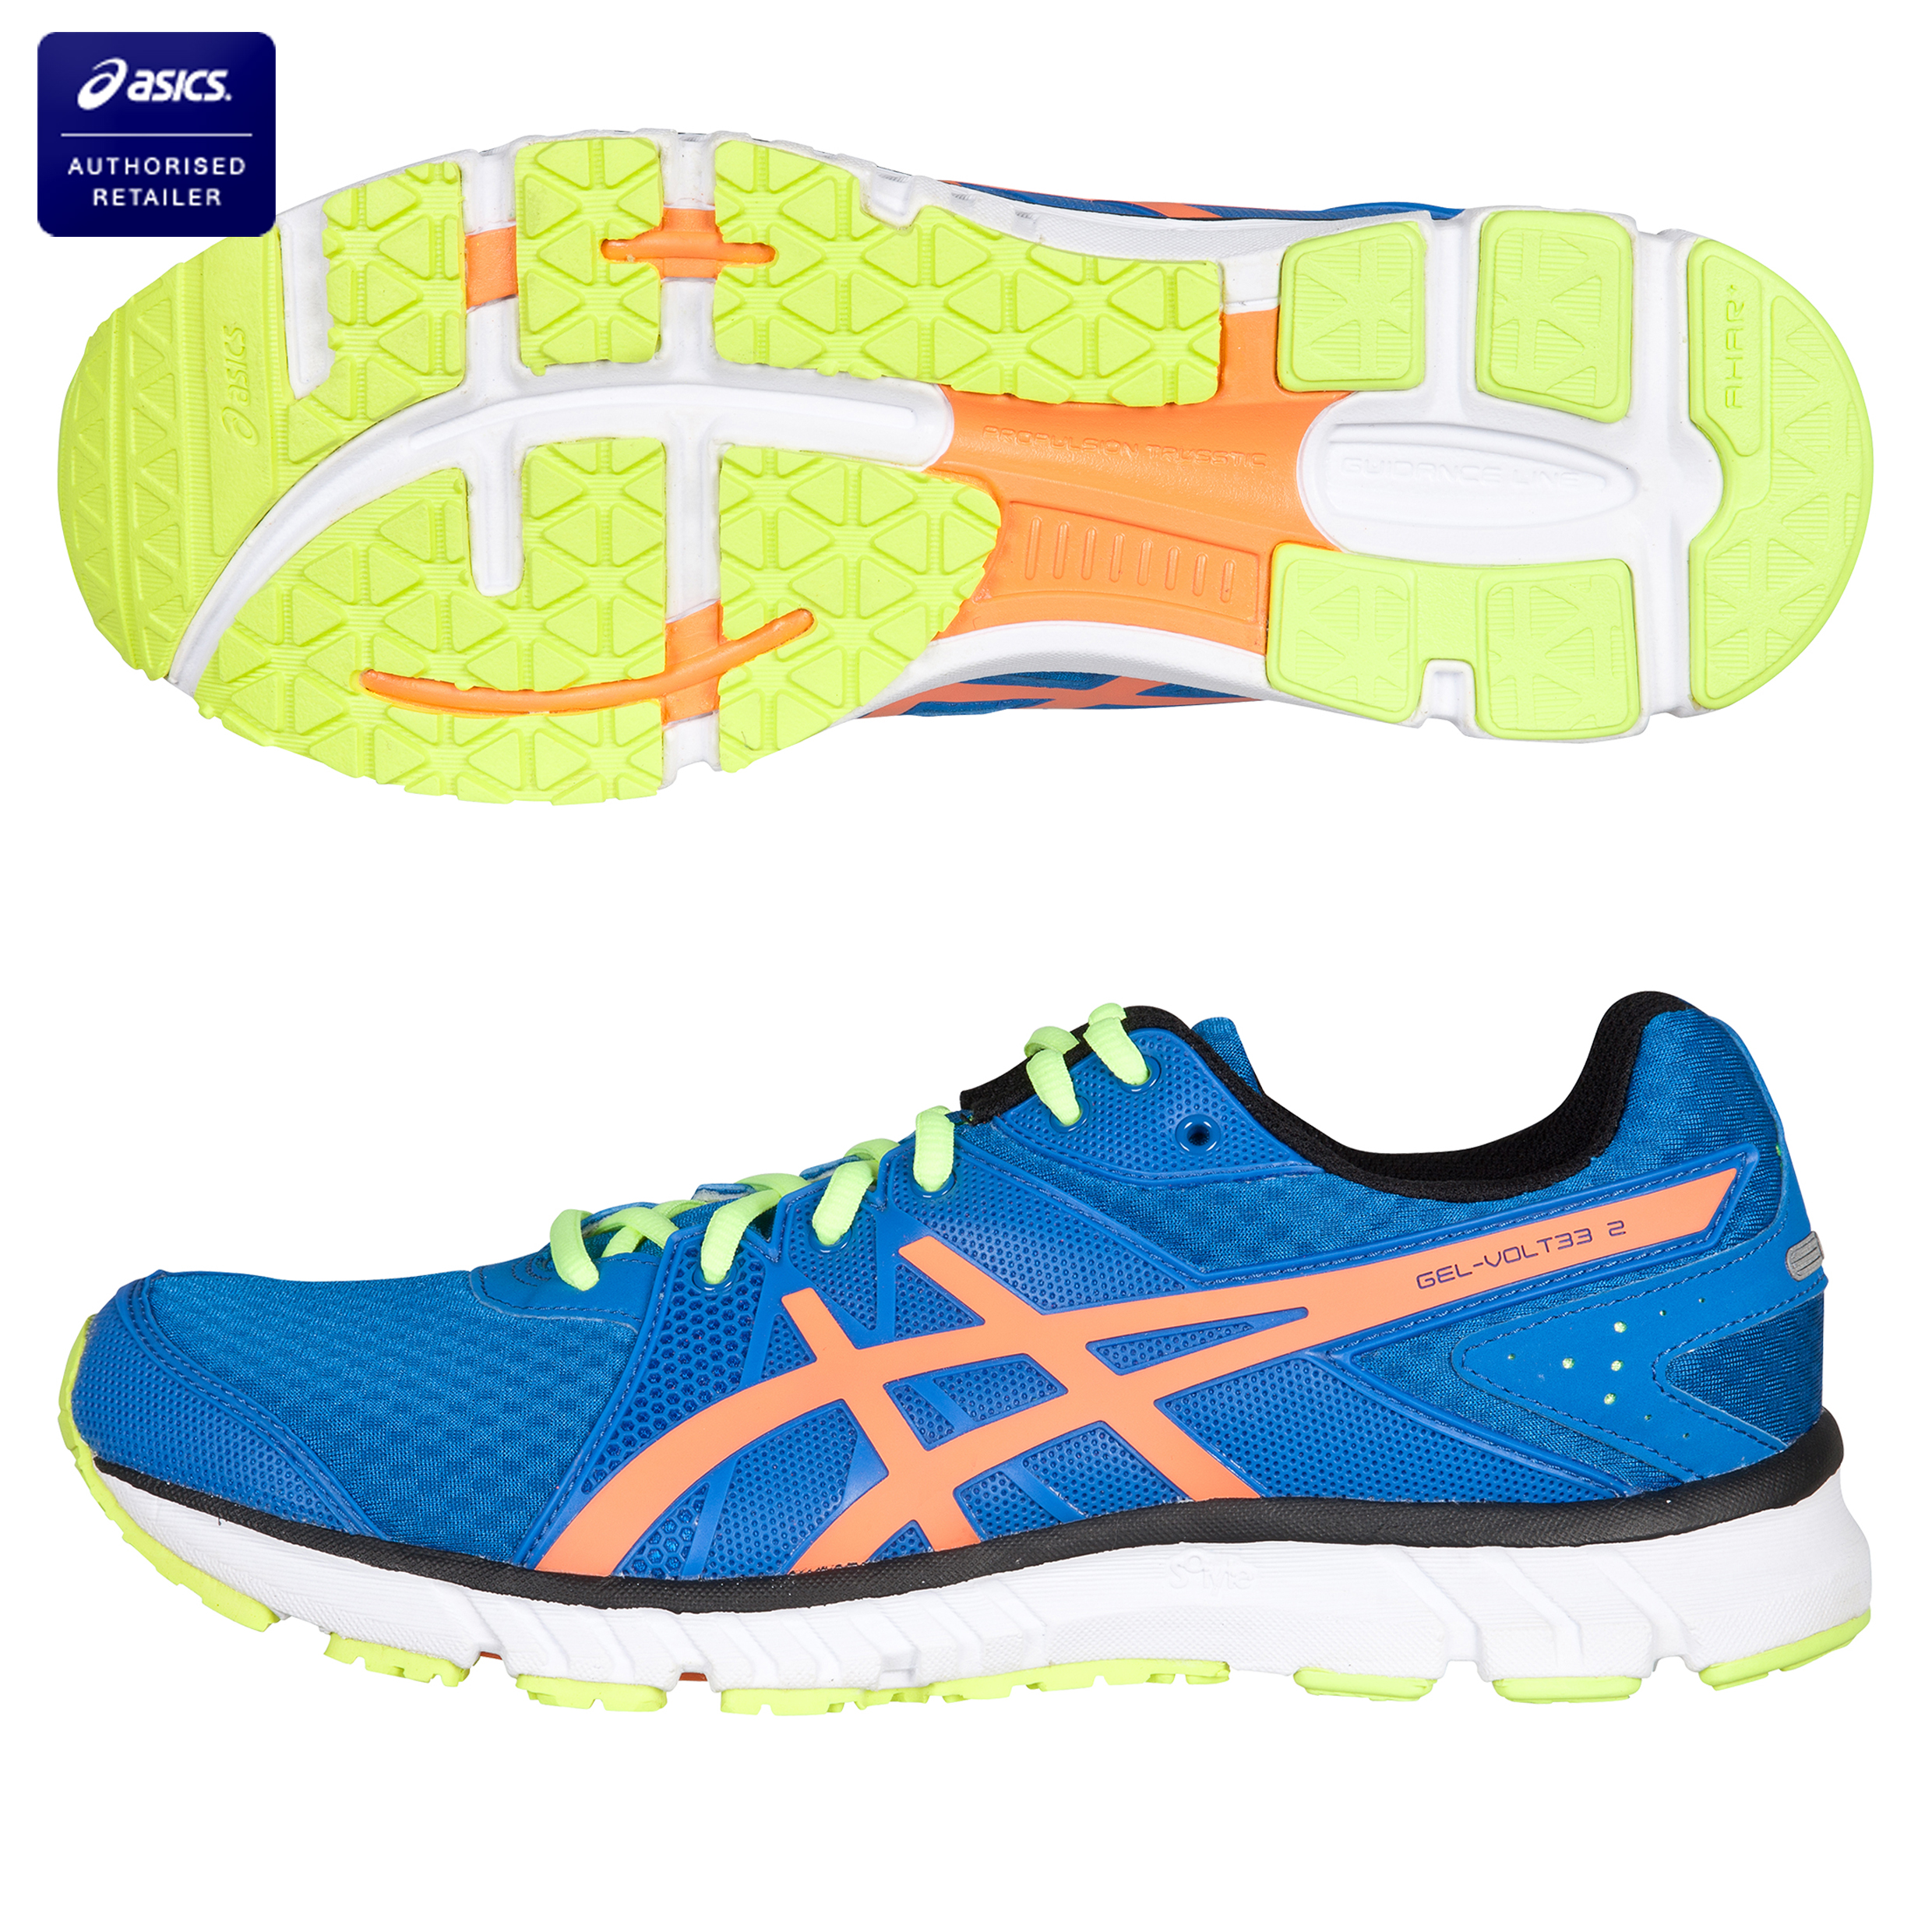 Asics Gel-Volt 33 2 Natural Trainers - Brilliant Blue/Neon Orange/Neon Yellow